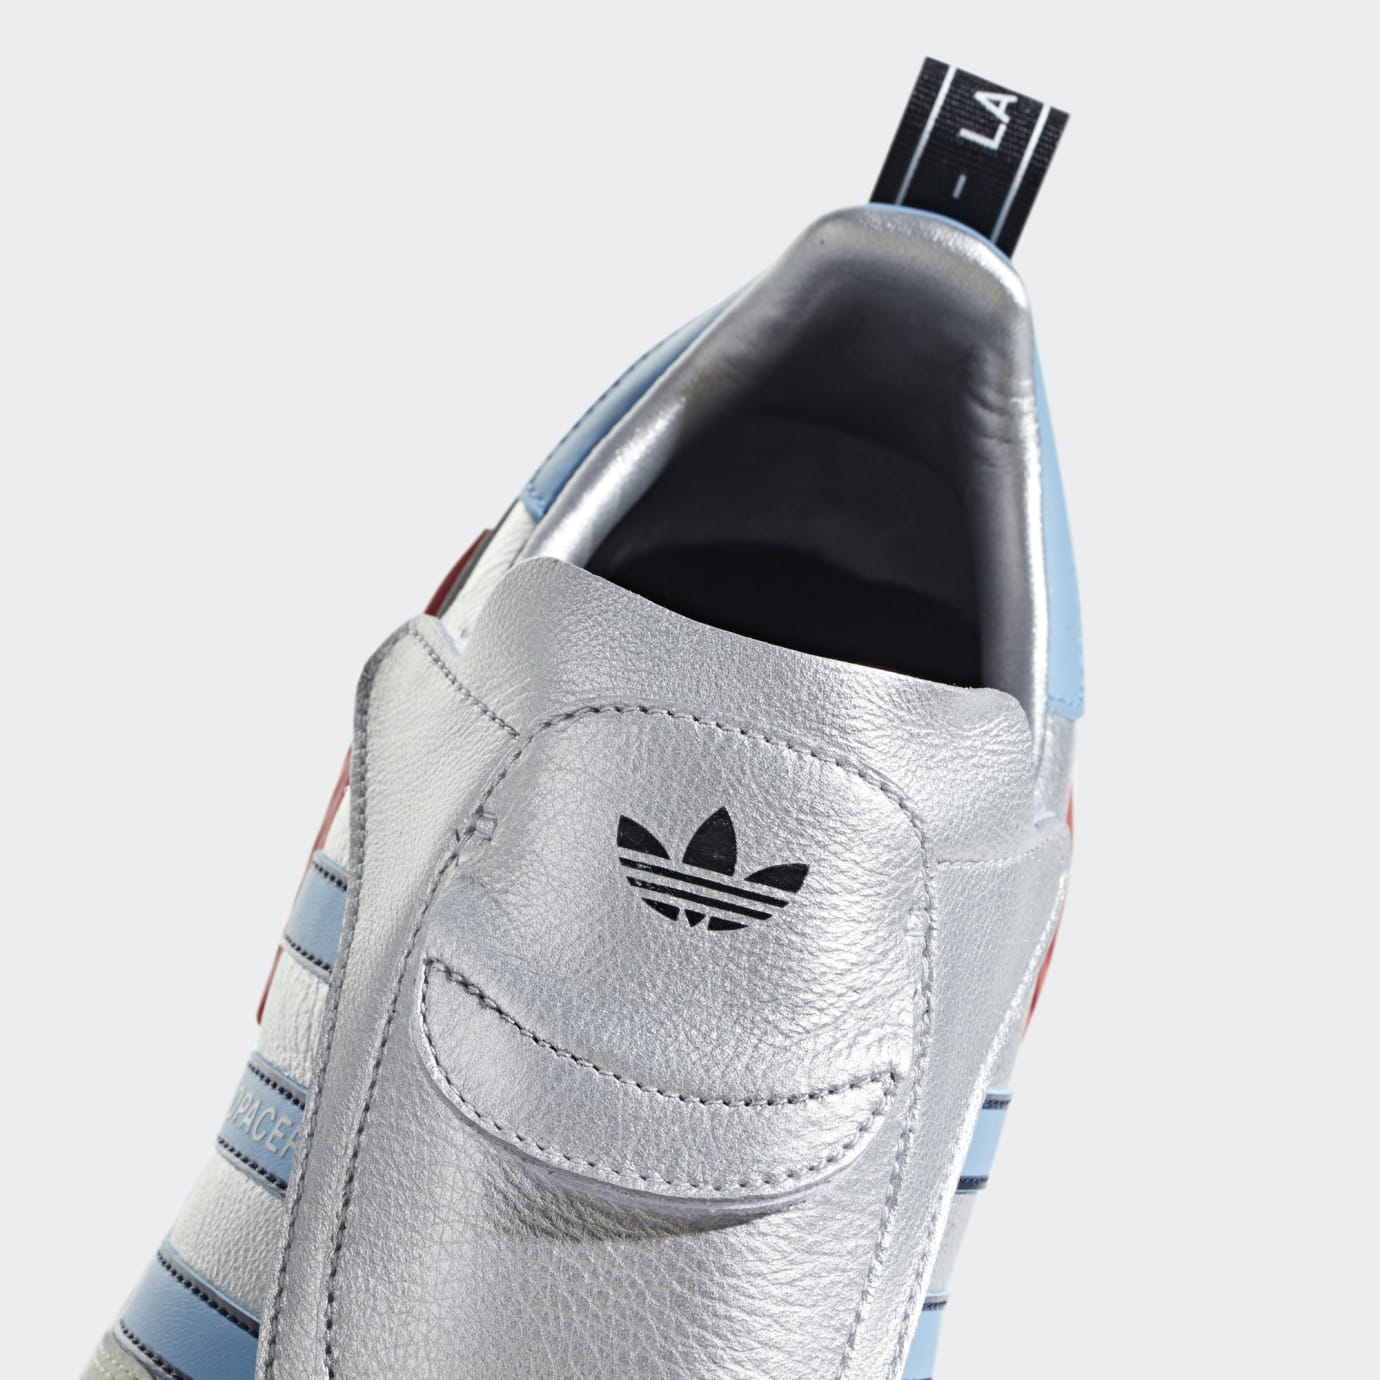 online store dba2f 7dfe2 Adidas Micropacer NMD R1 Silver Release Date G26778 | Sole ...